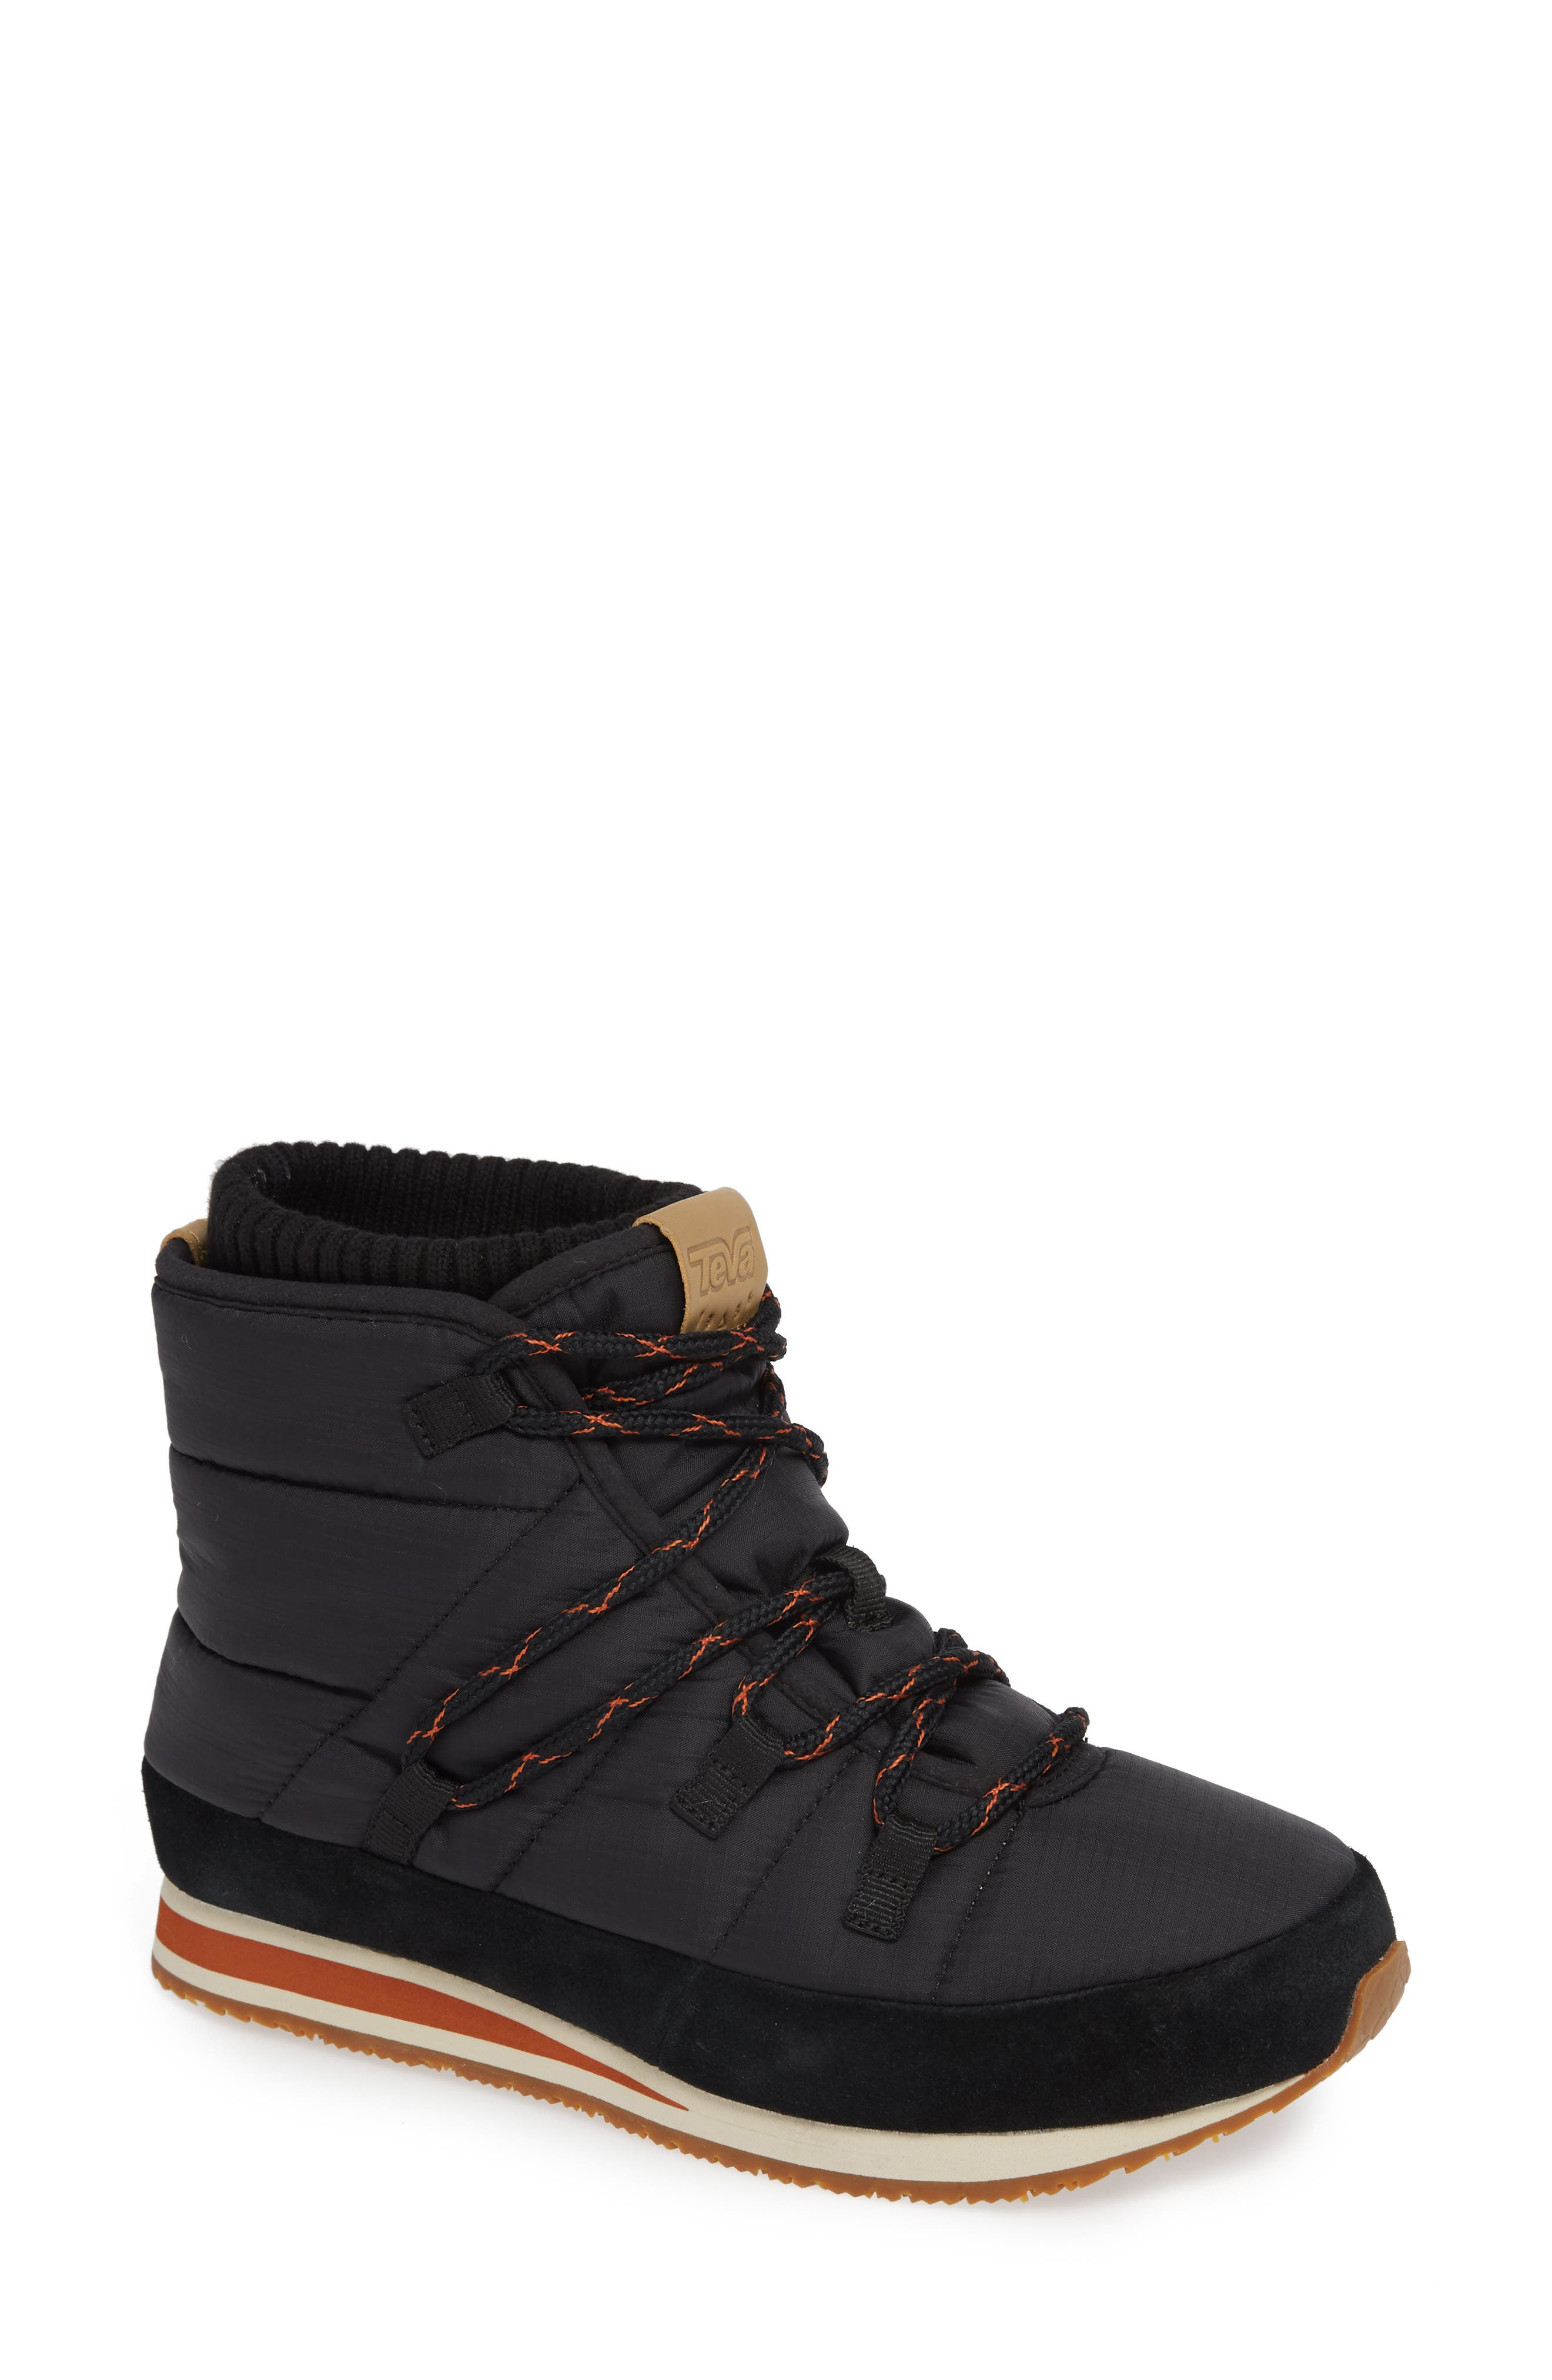 Teva Ember Lace-Up Winter Bootie, Black